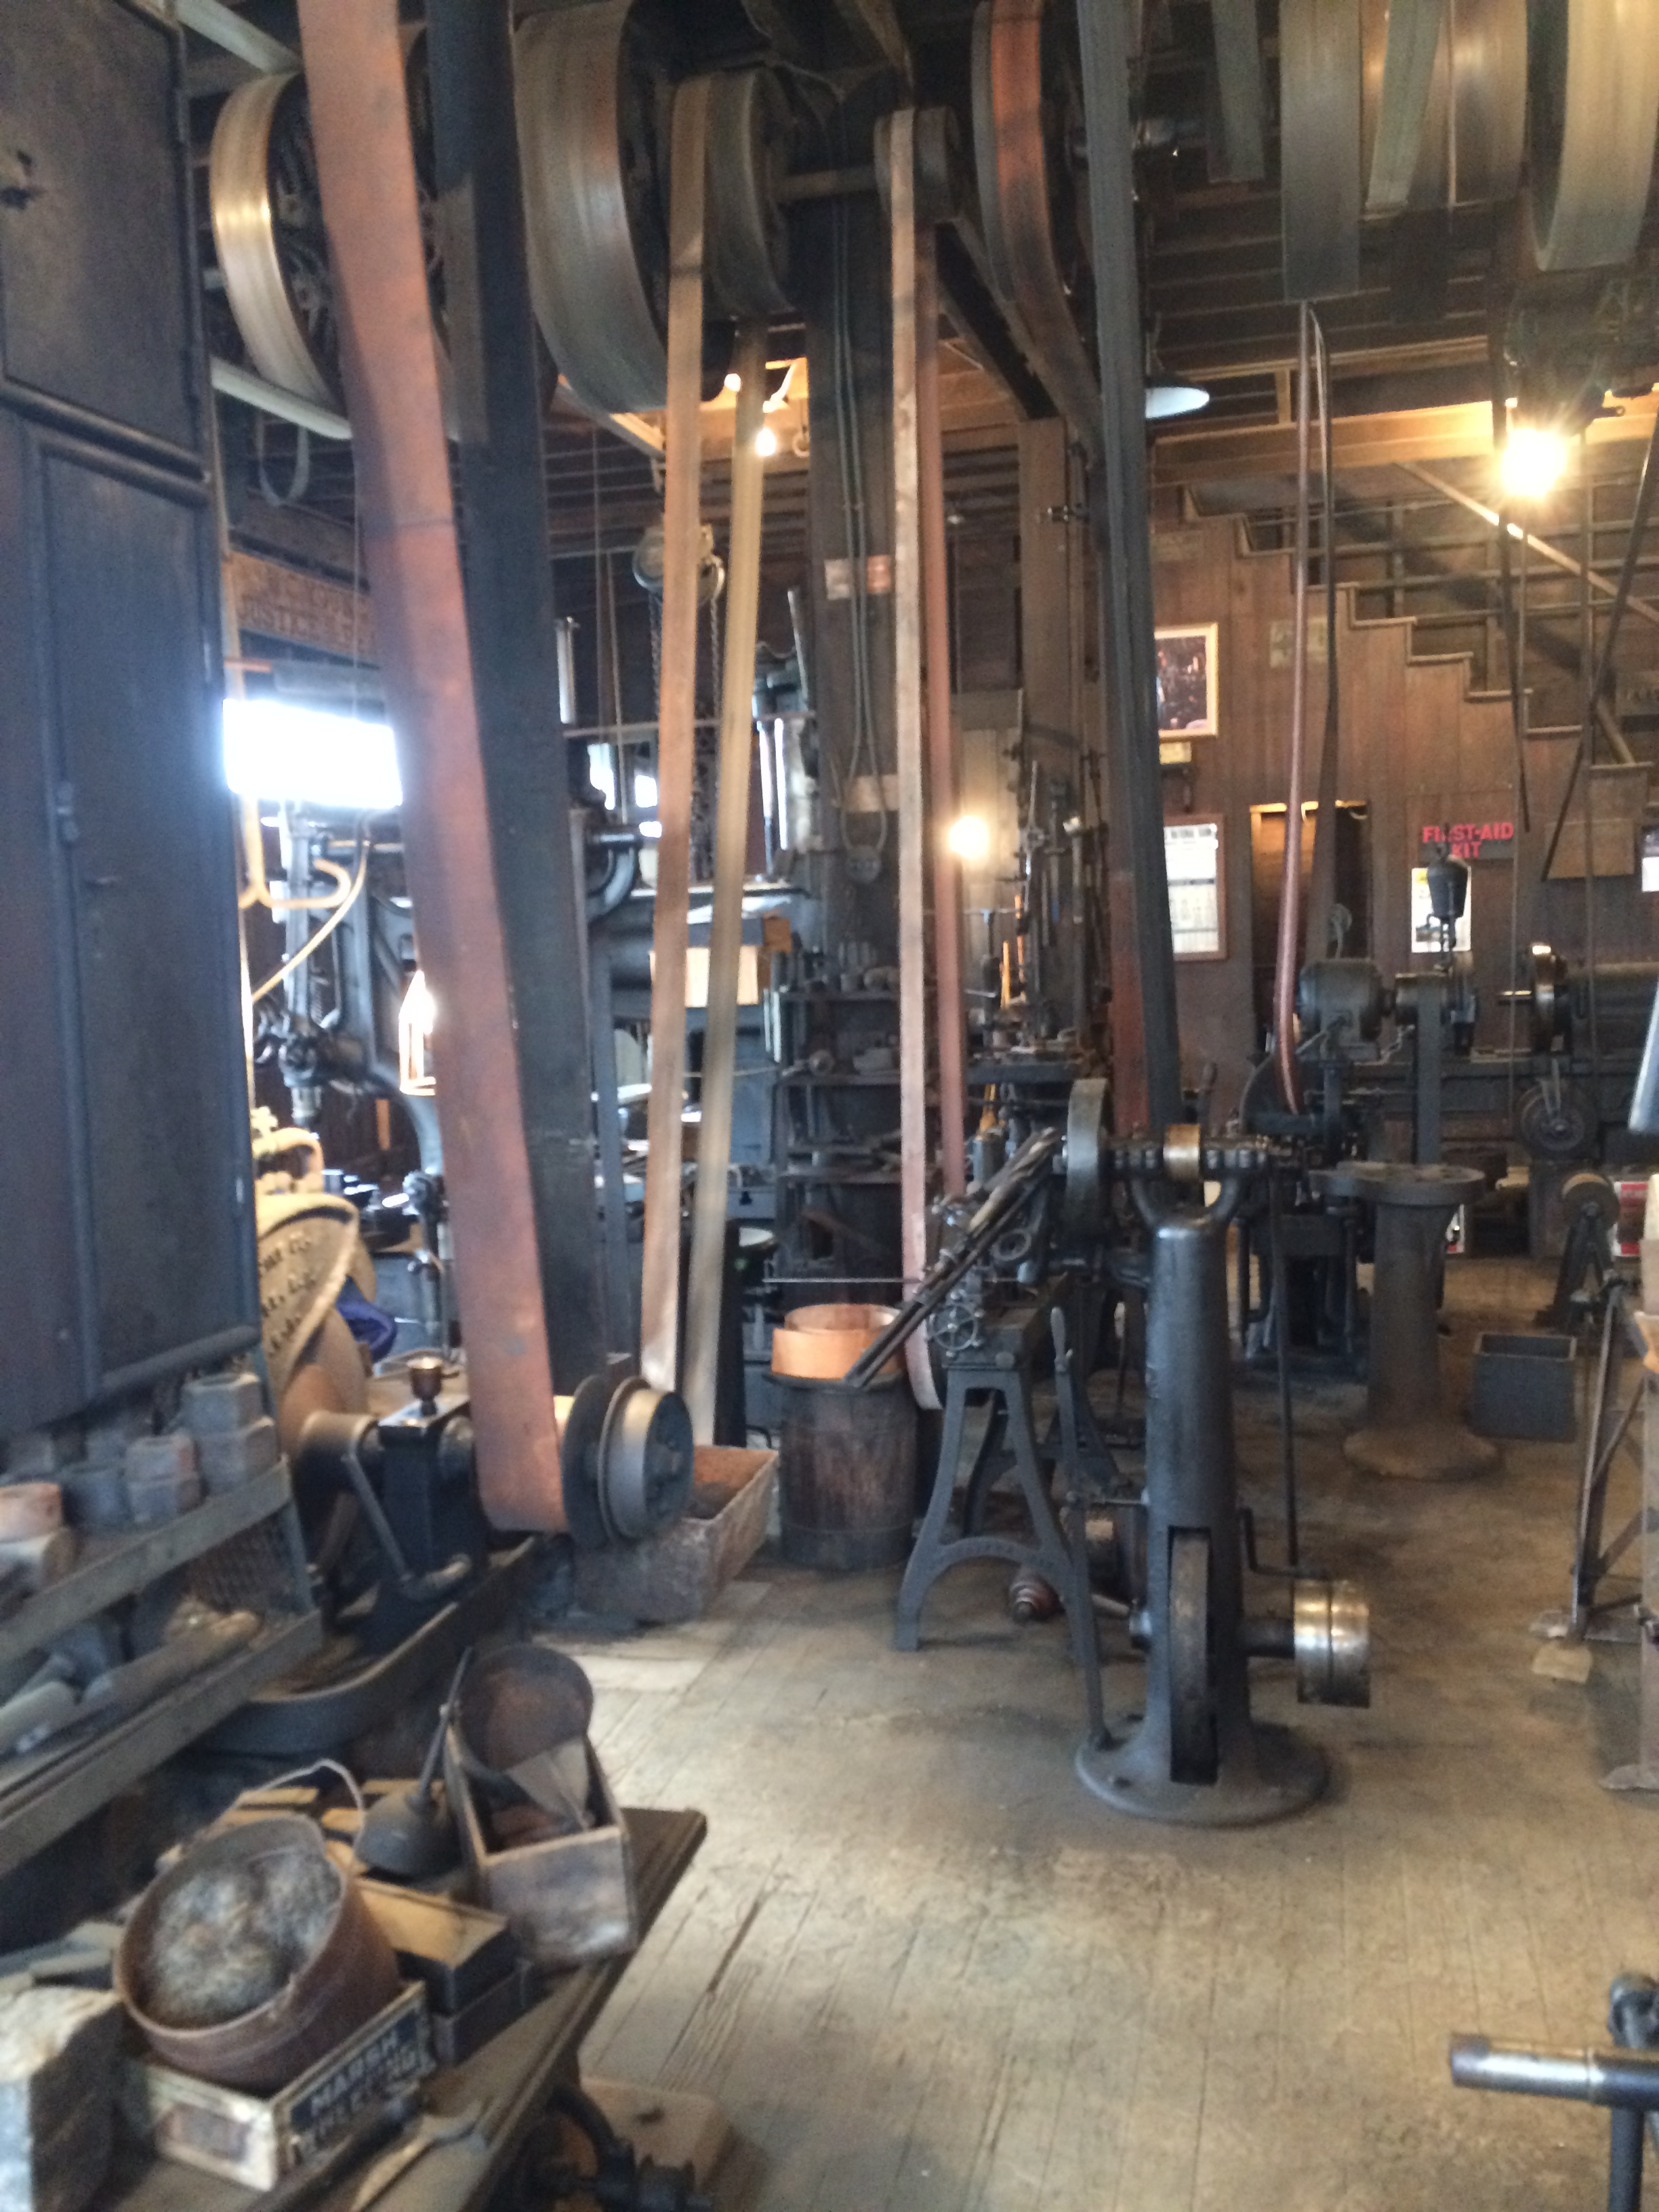 This photo shows the belt system used to run the various machines within the shop.